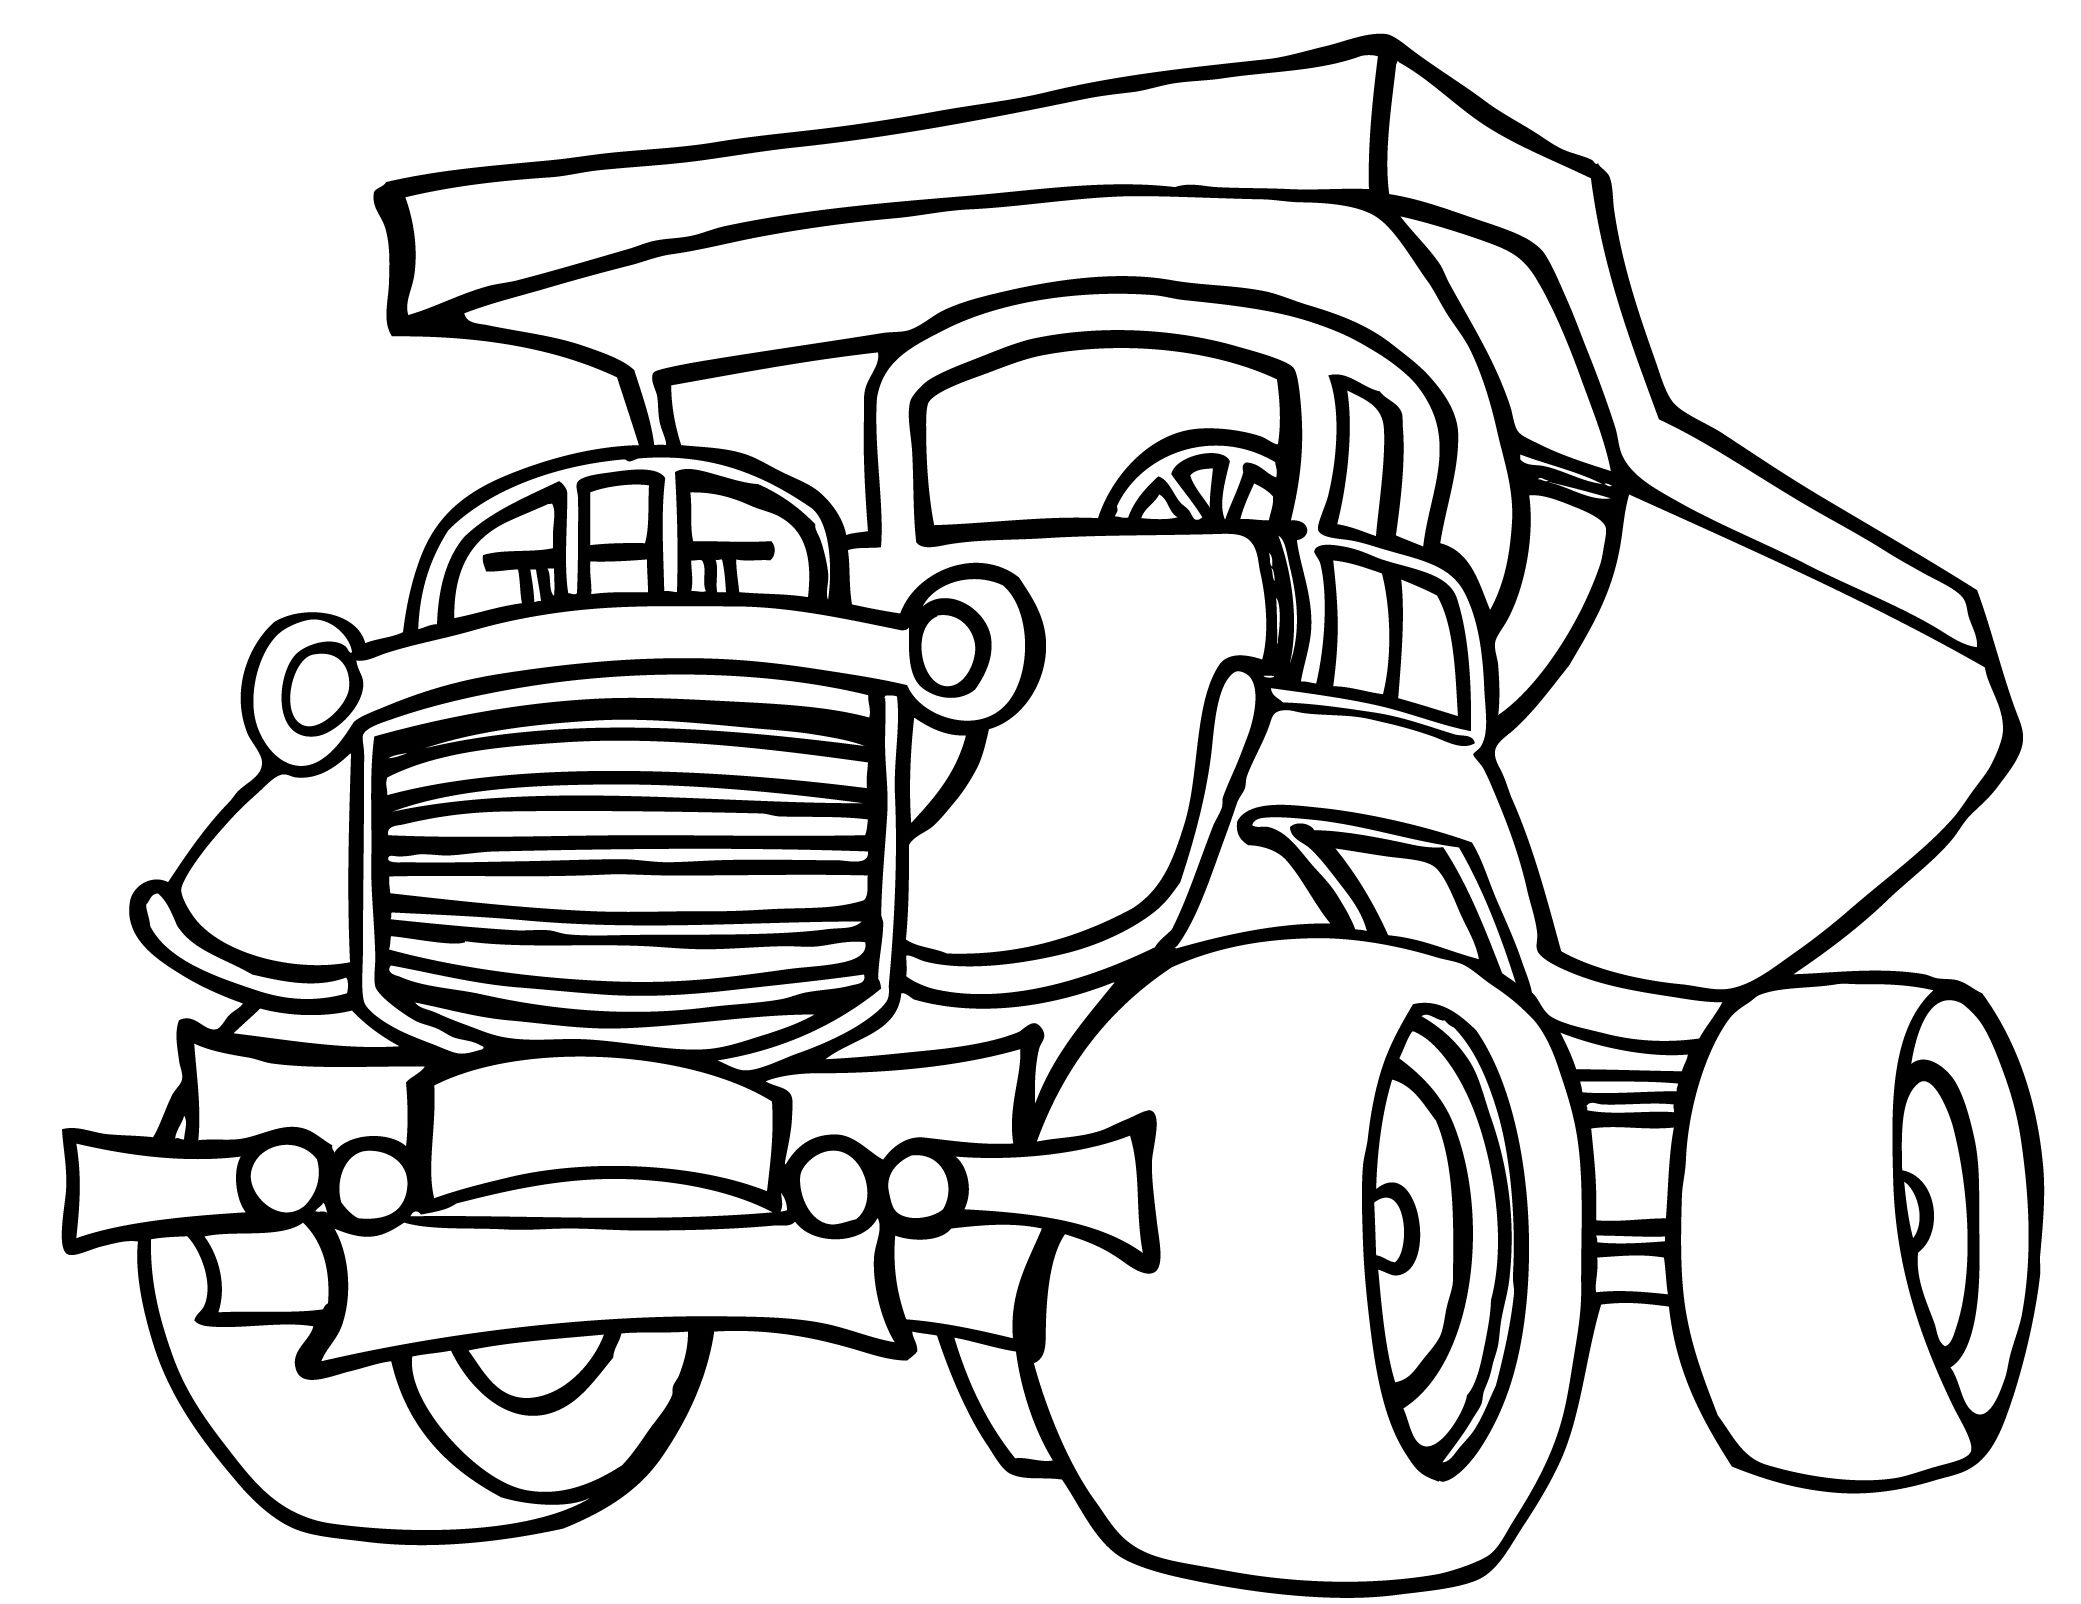 rescue truck coloring pages heatwave the fire bot coloring pages for kids printable rescue coloring truck pages